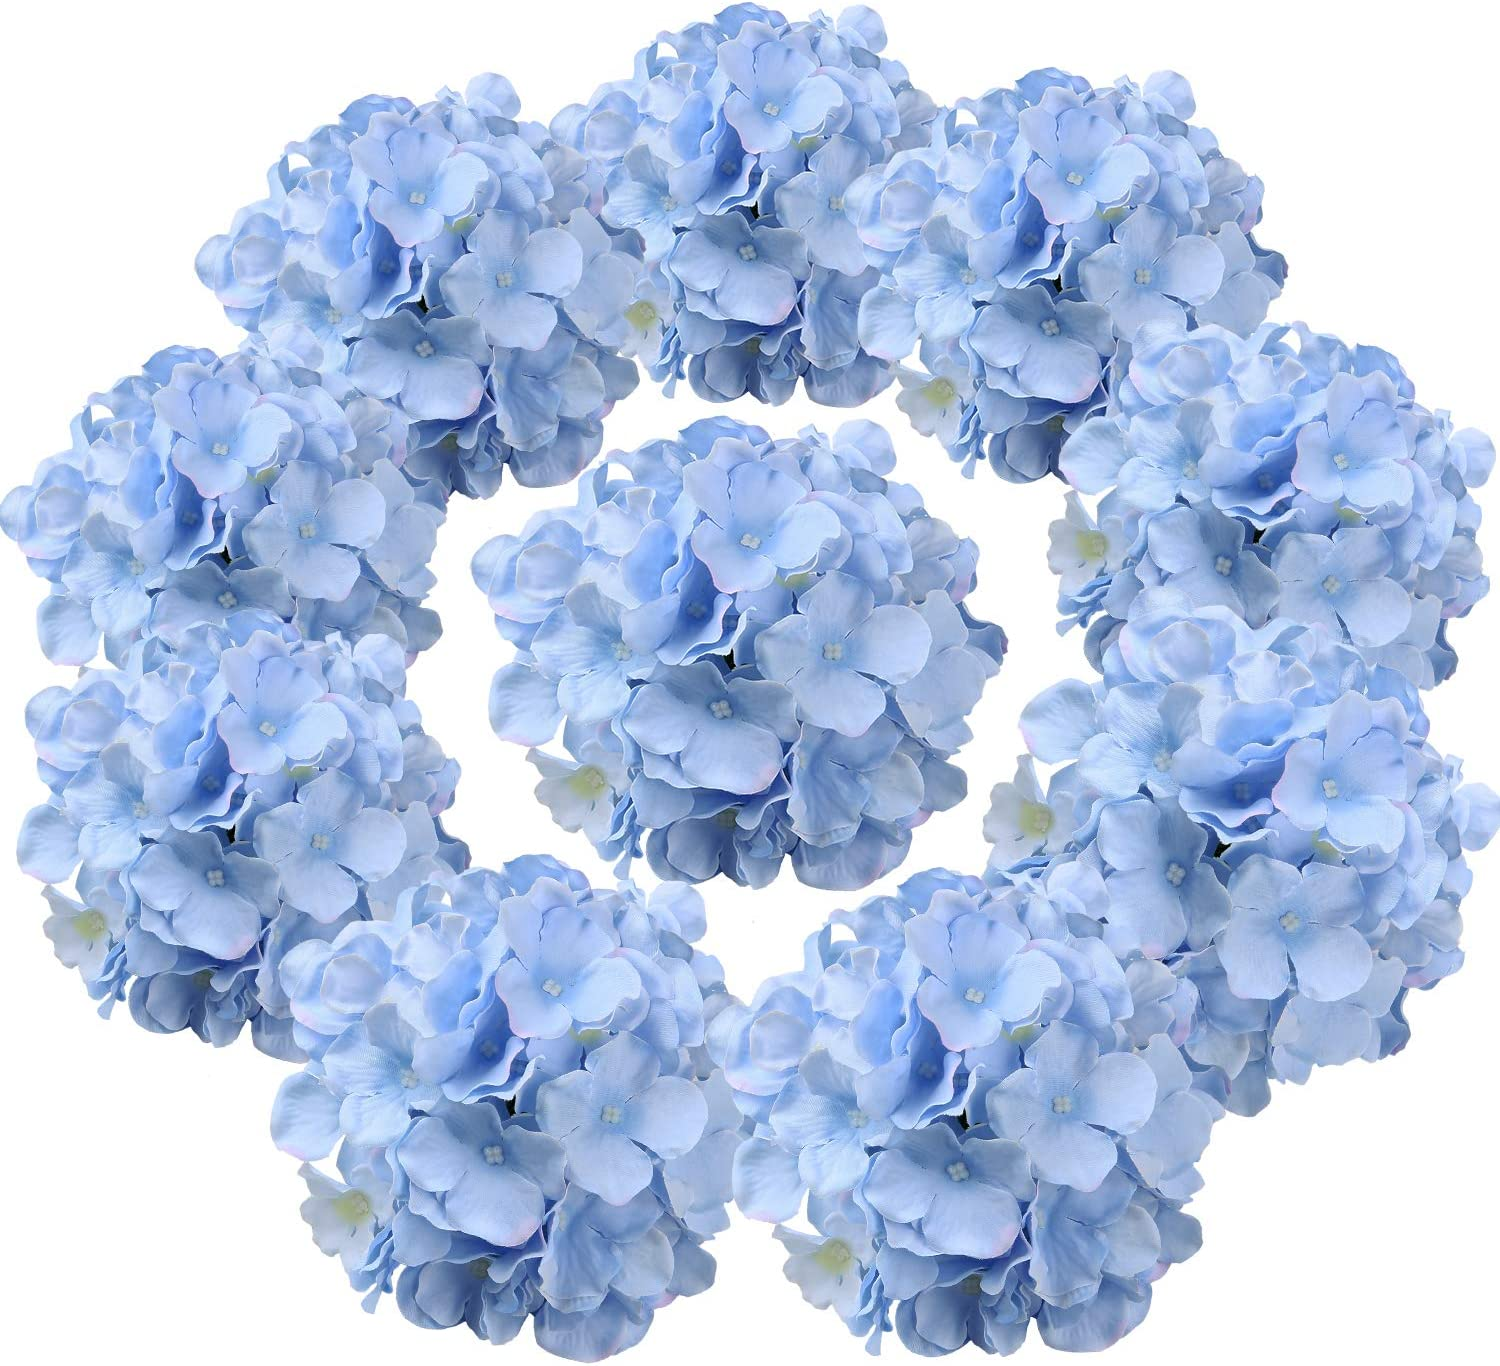 Flojery Silk Hydrangea Heads Artificial Flowers Heads with Stems for Home Wedding Decor,Pack of 10 (Blue)